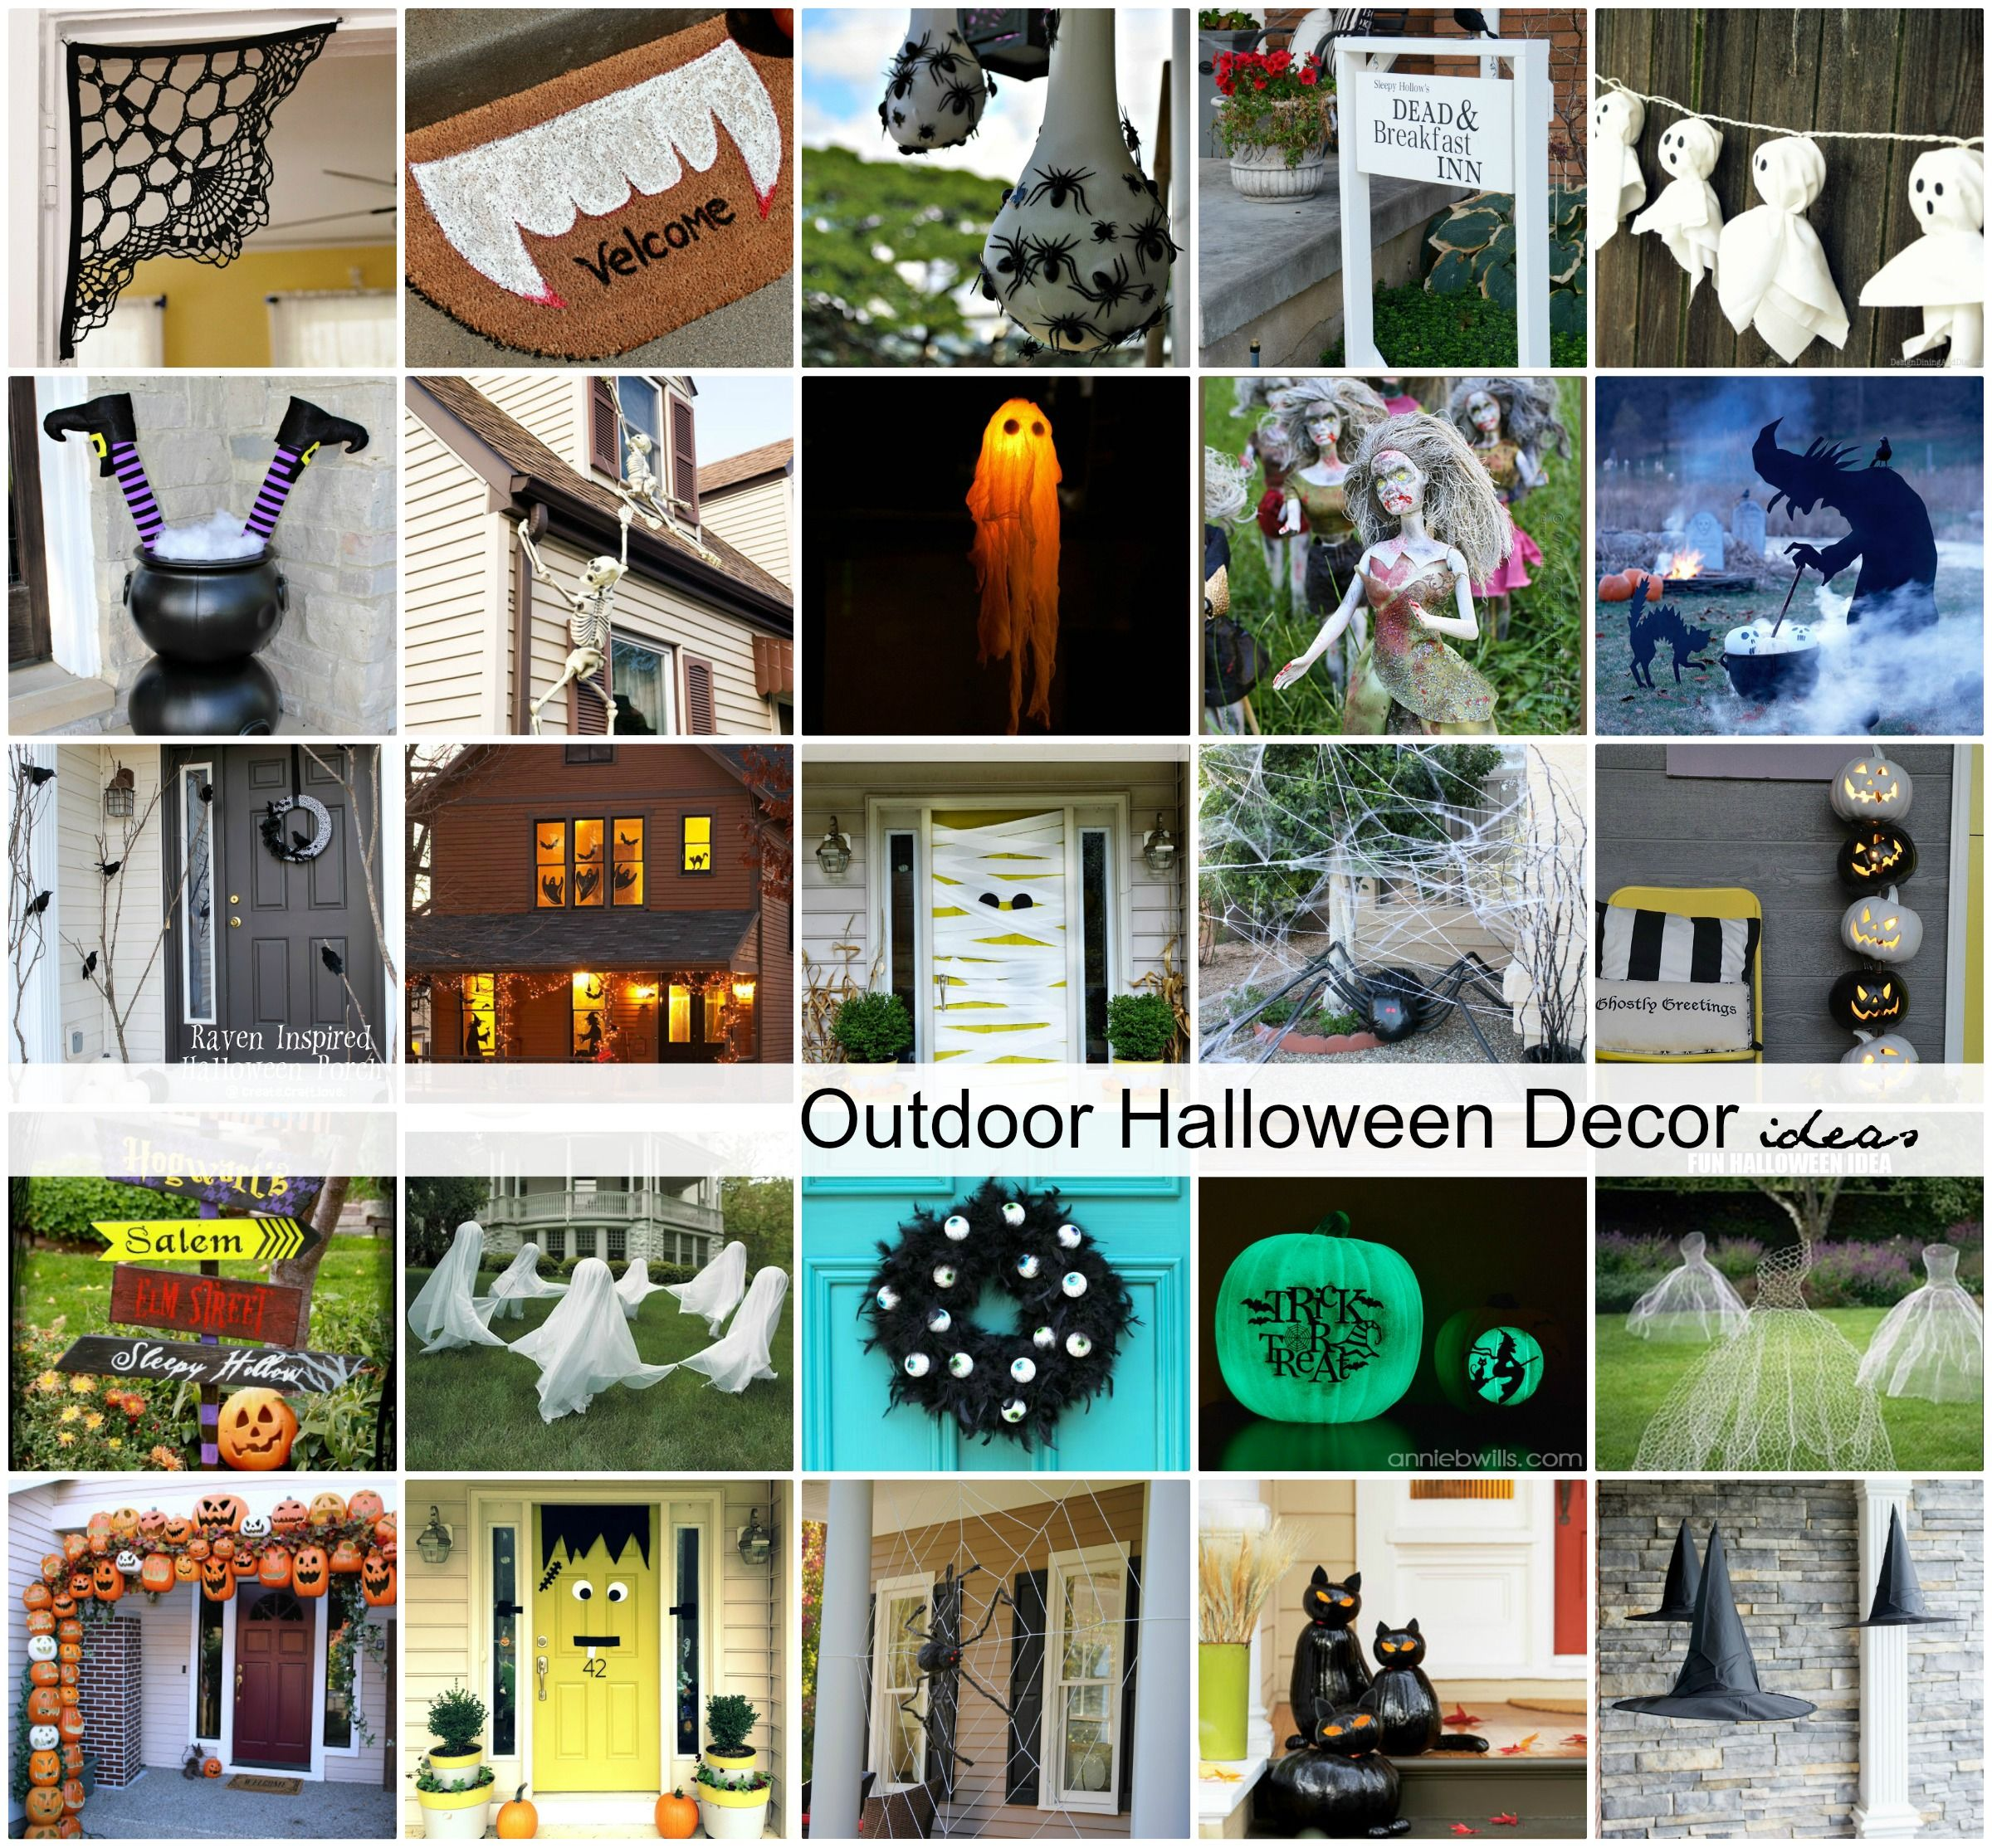 DIY Outdoor Halloween Decorations Diy outdoor halloween - halloween decorations diy